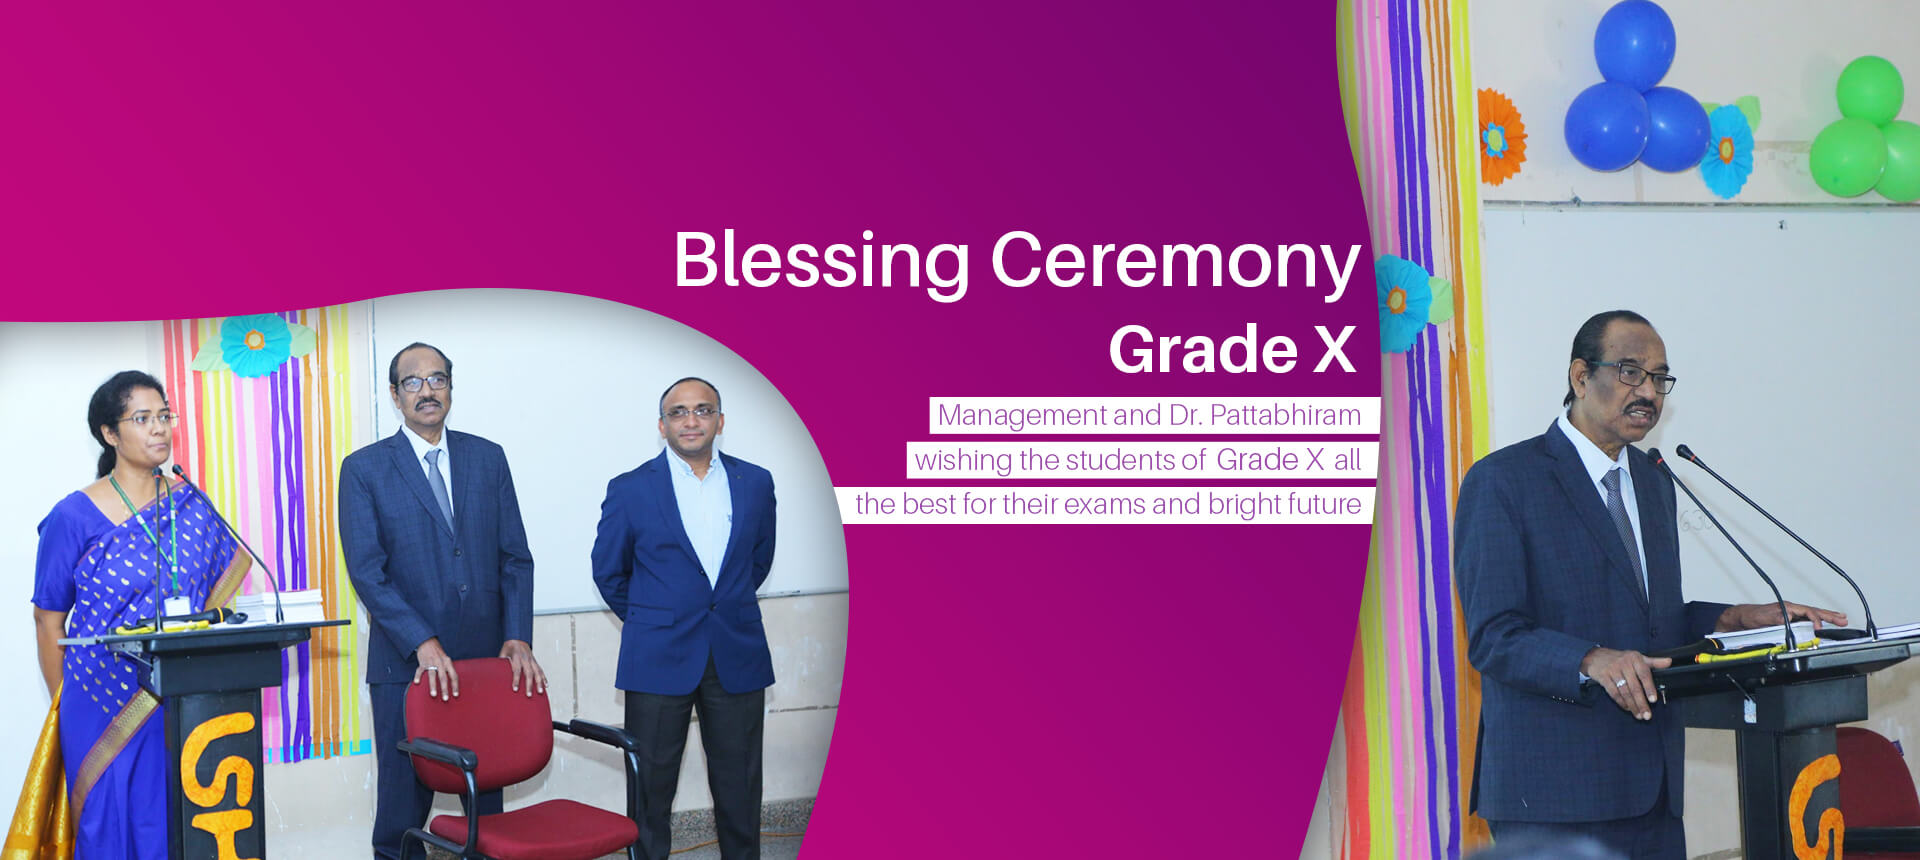 blessing ceremony class 10th